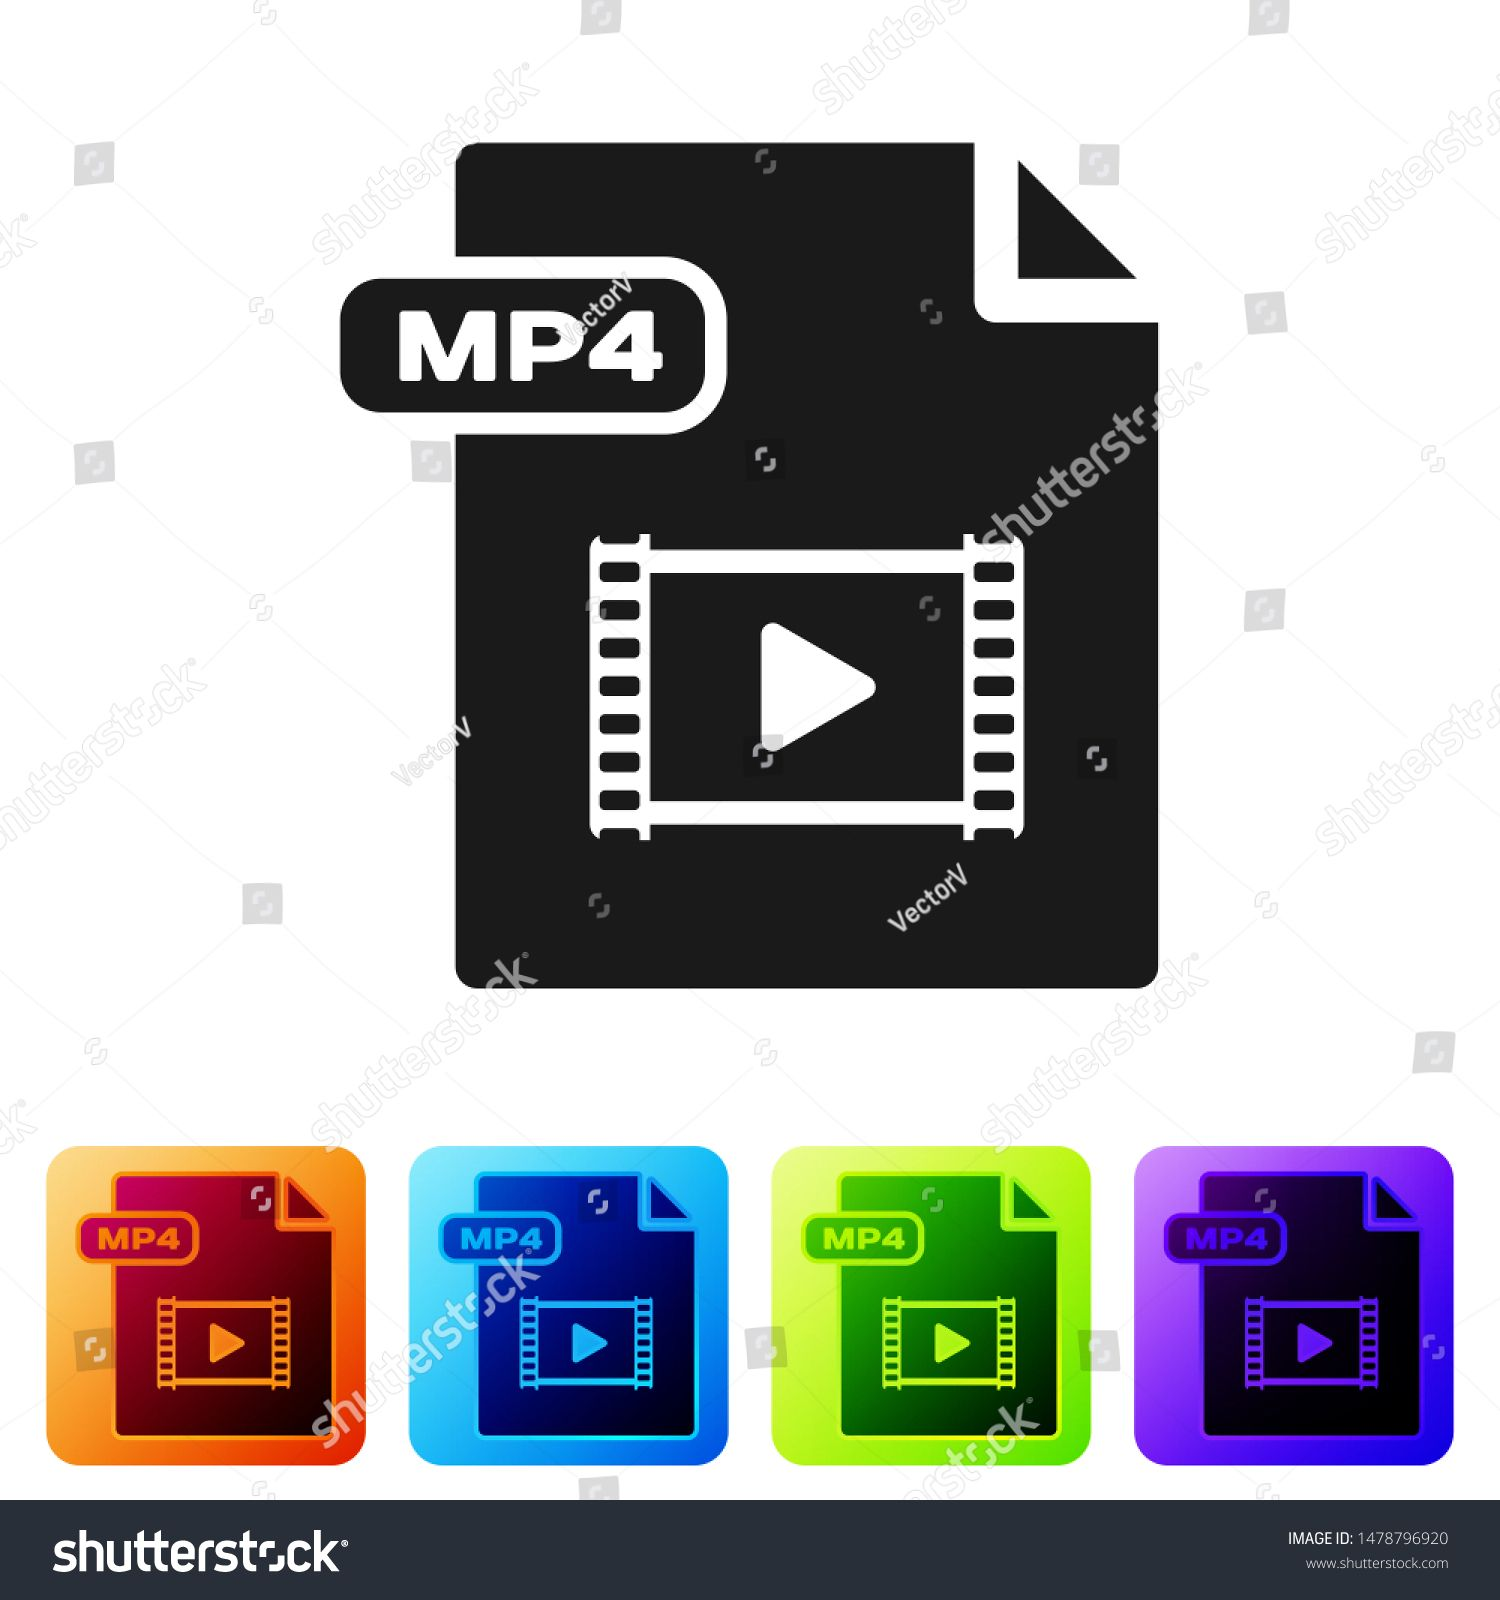 Black MP4 file document. Download mp4 button icon isolated